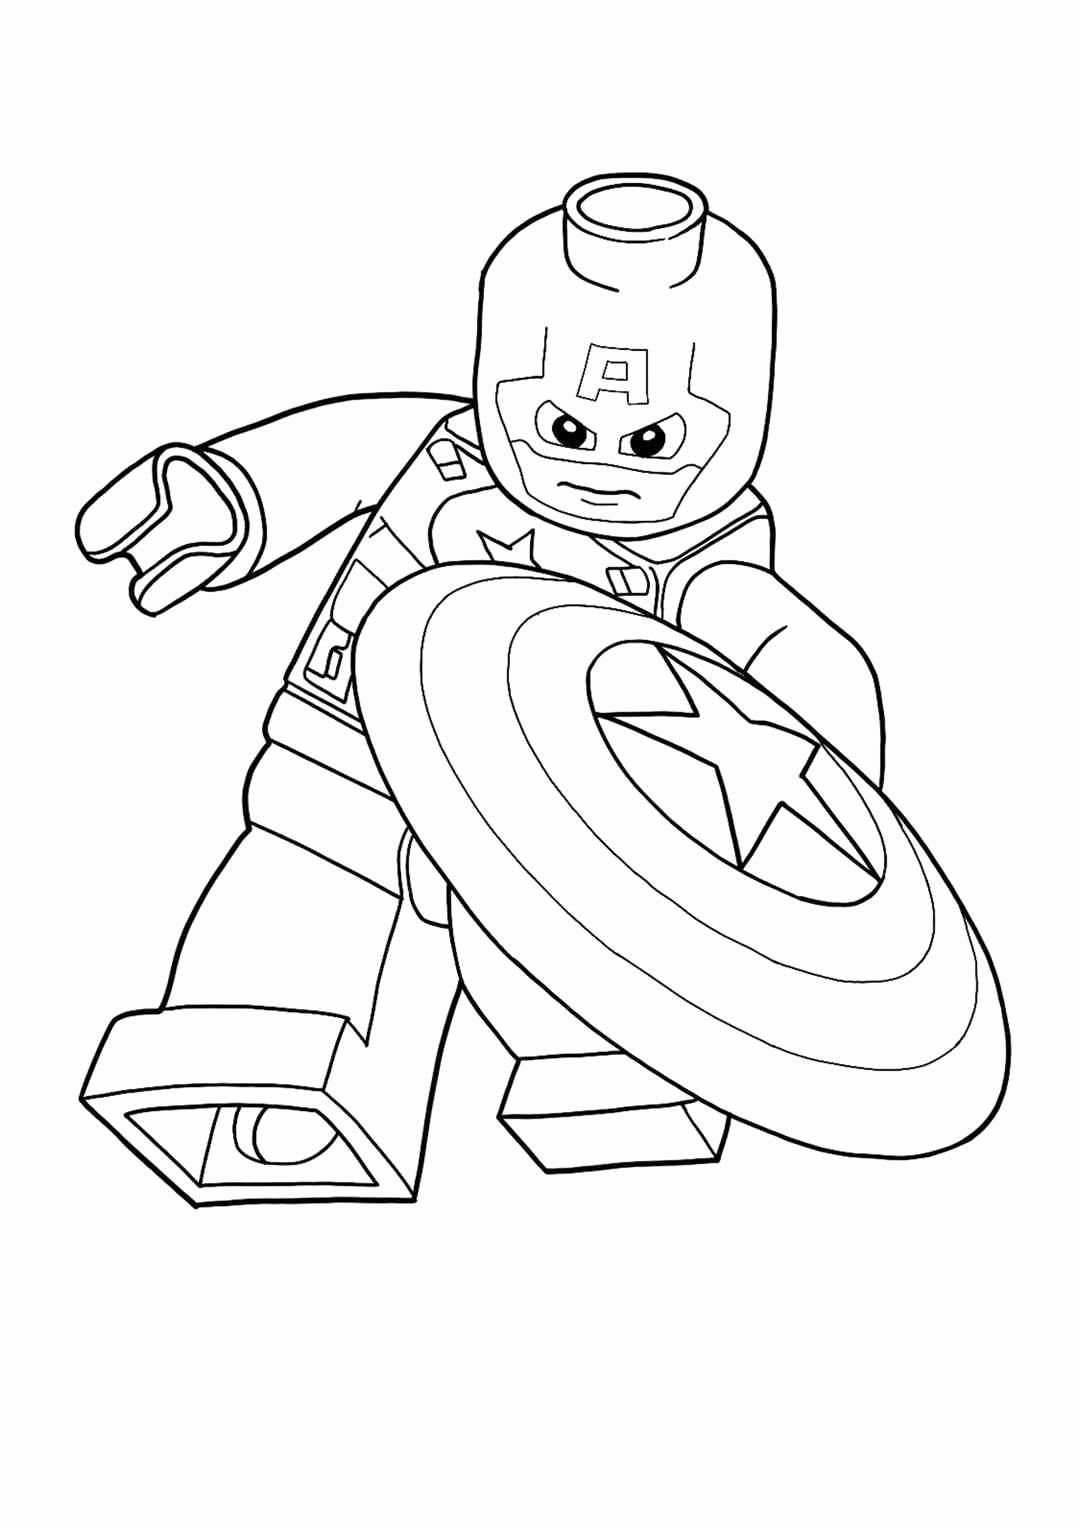 Captain America Coloring Pages New Captain America Coloring Pages 22 Free Printable Captain America Coloring Pages Avengers Coloring Pages Lego Coloring Pages